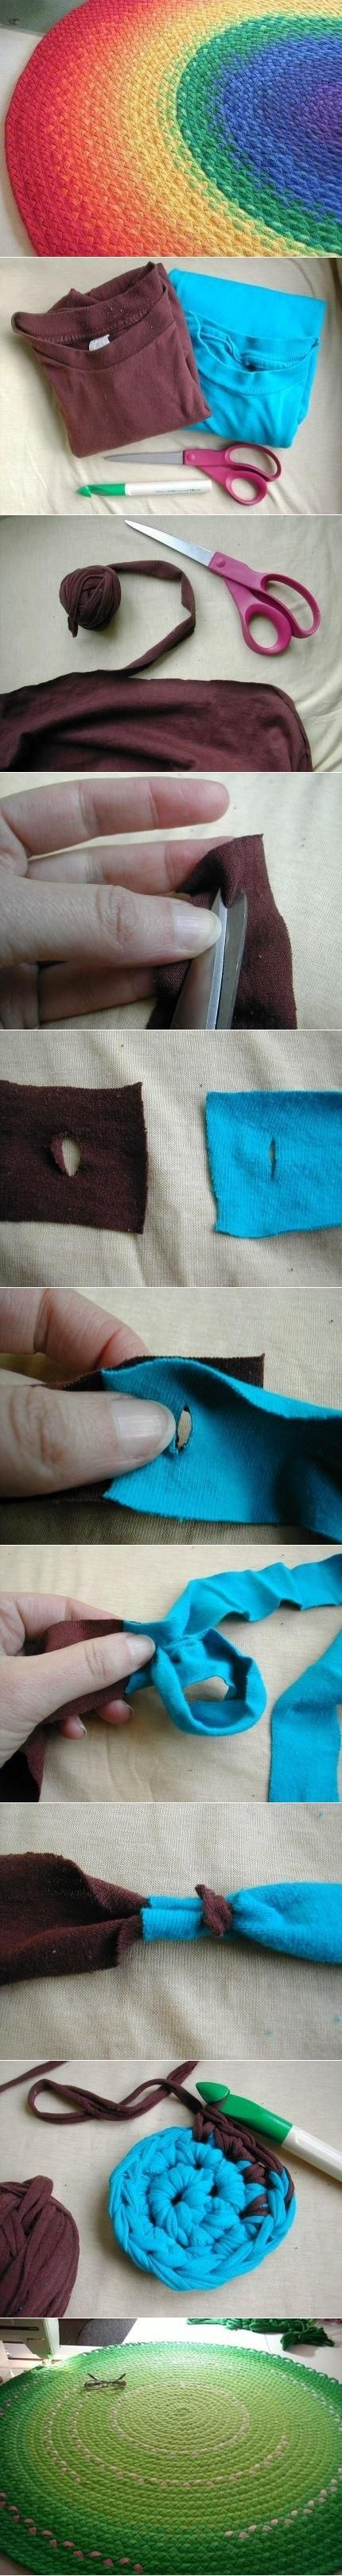 #DIY rugs from old t-shirts